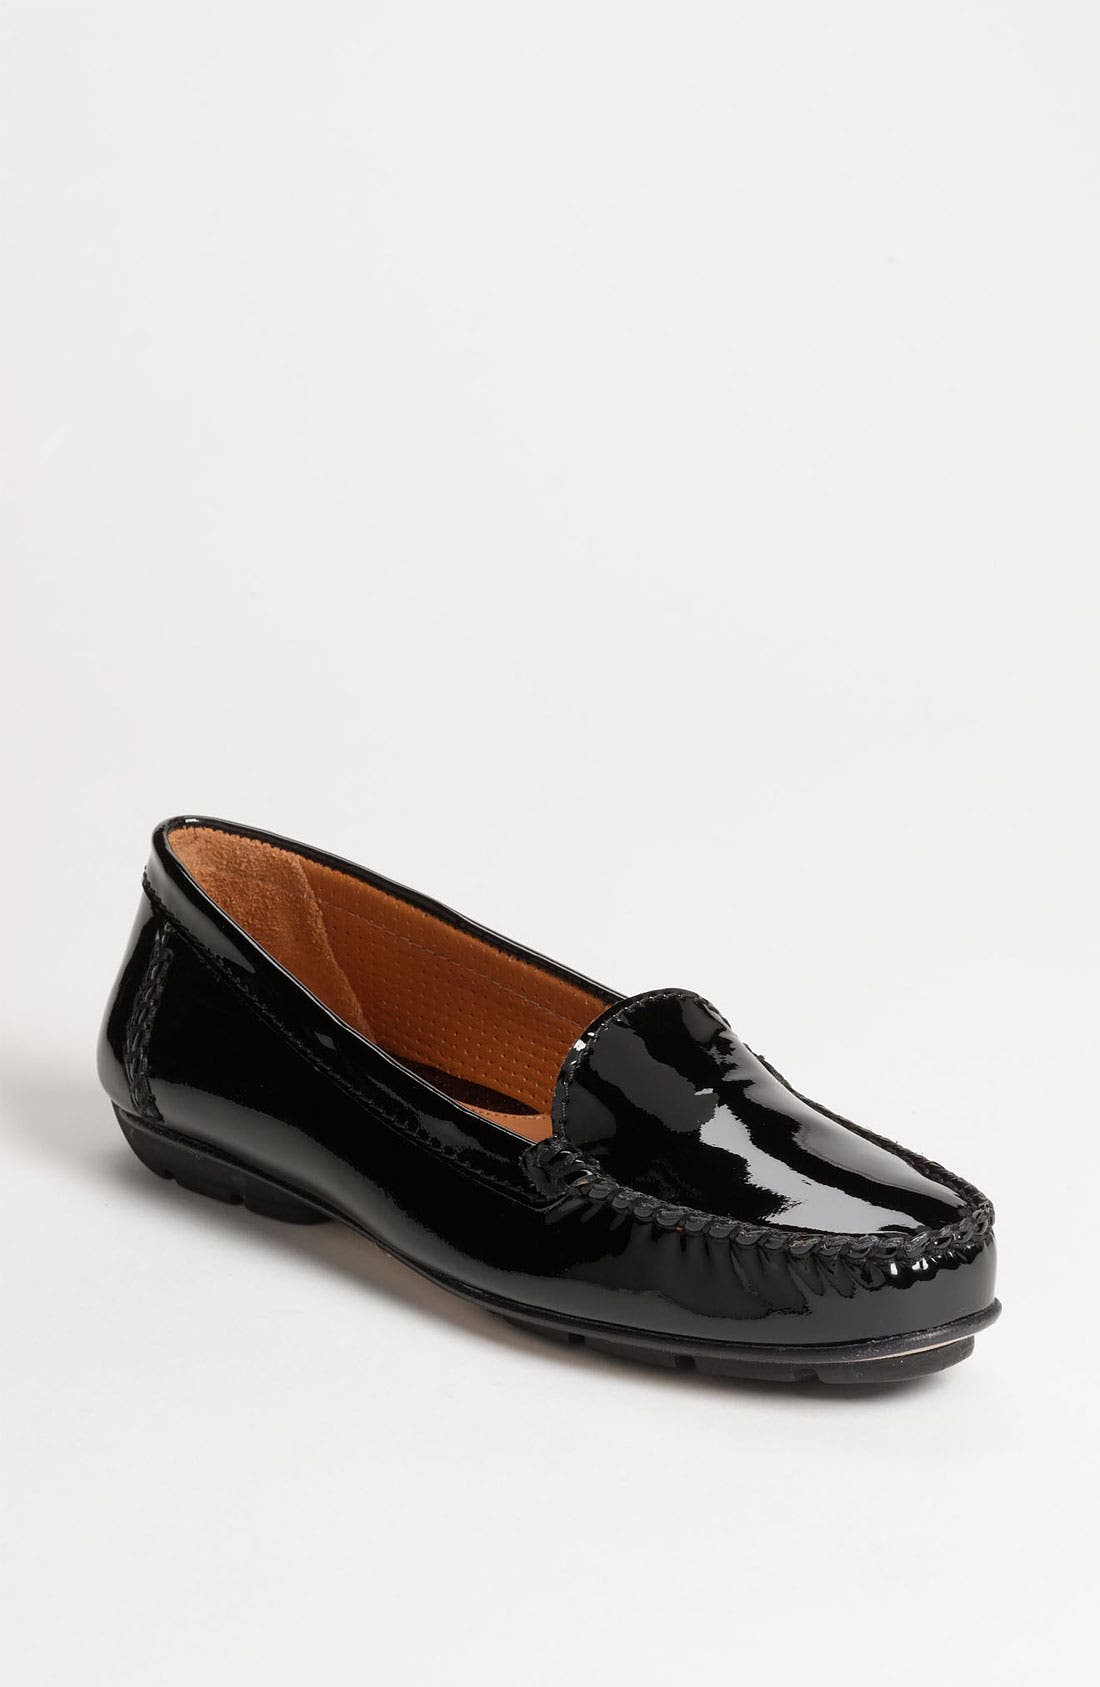 Main Image - Geox 'Italy' Moccasin